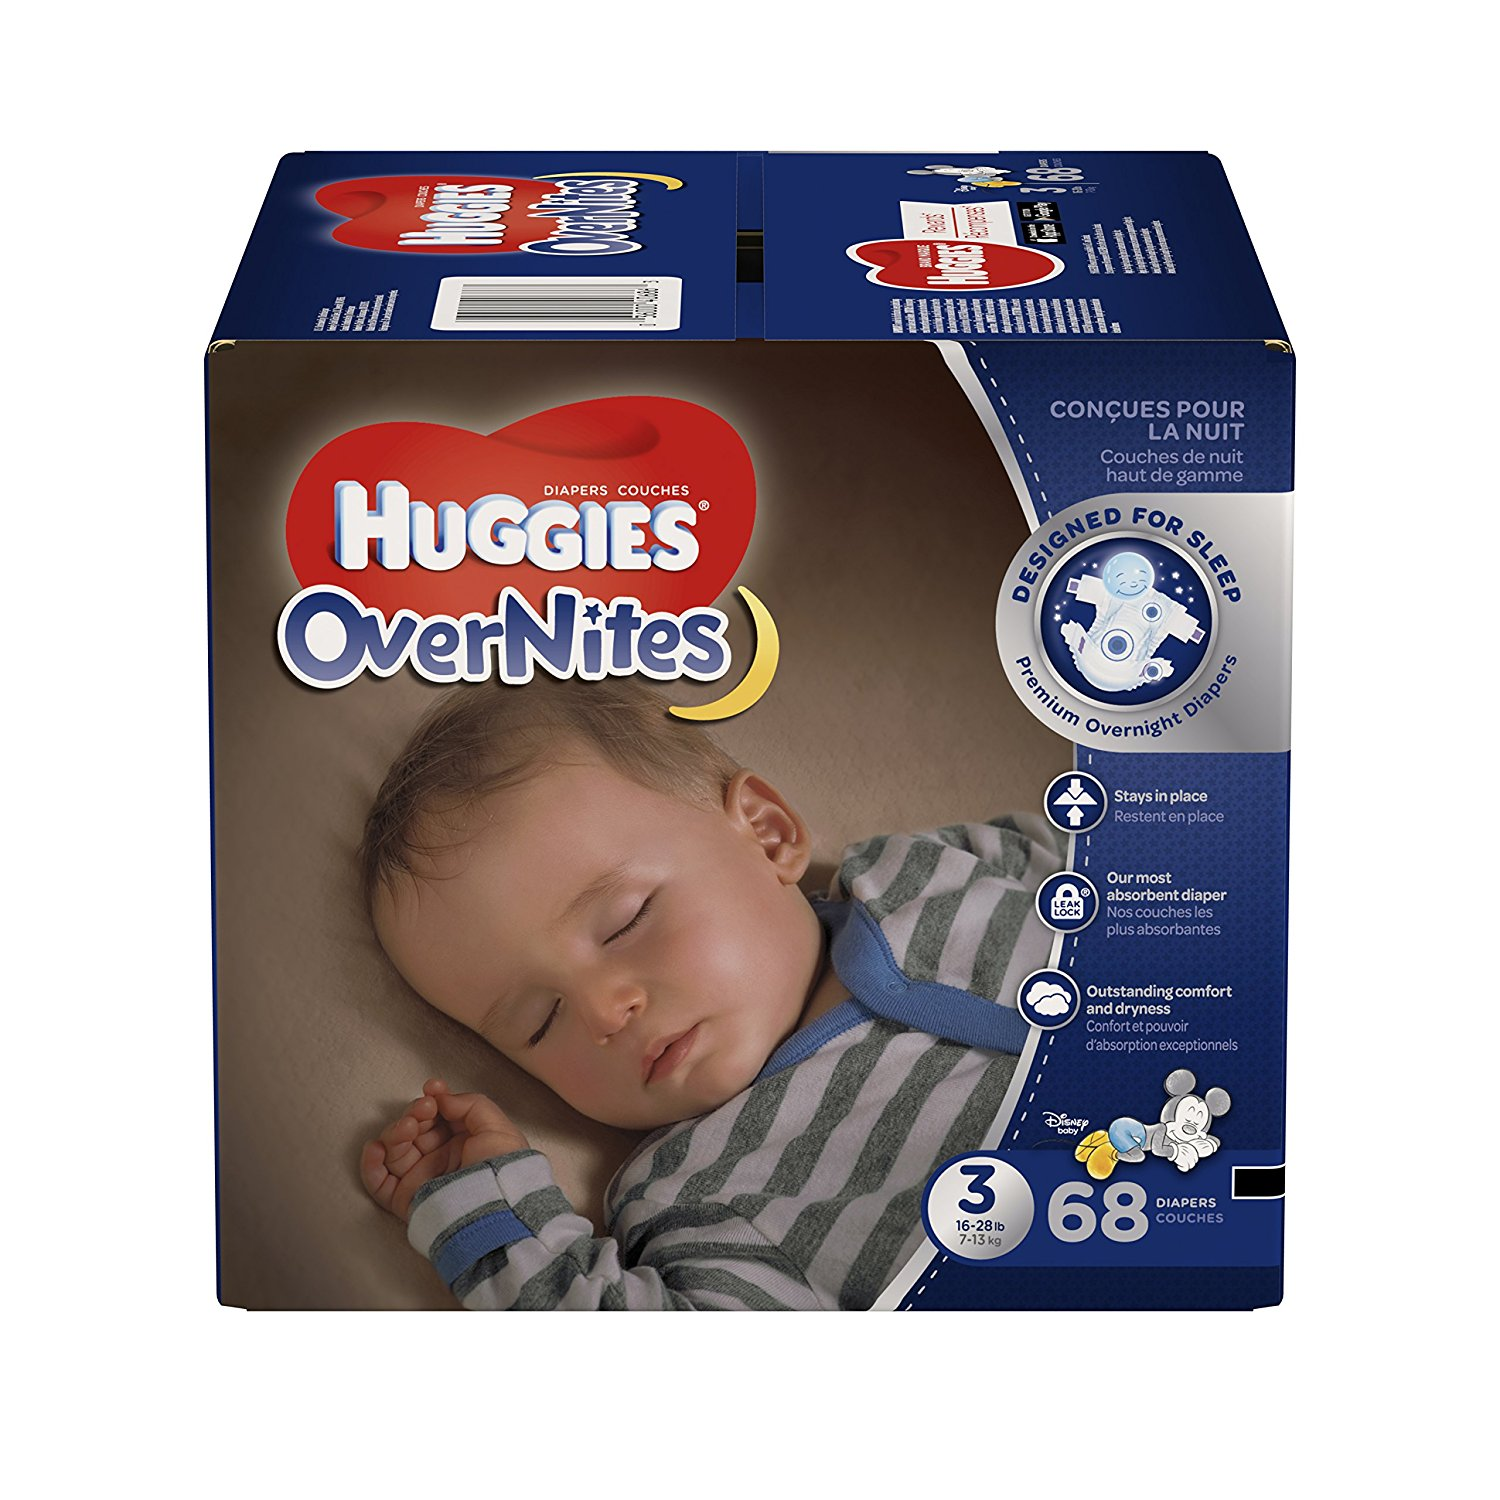 OverNites Diapers, Size 3, 68 ct., Overnight Diapers, Designed for sleep, and a sounder sleep for baby is guaranteed or your money back* By HUGGIES